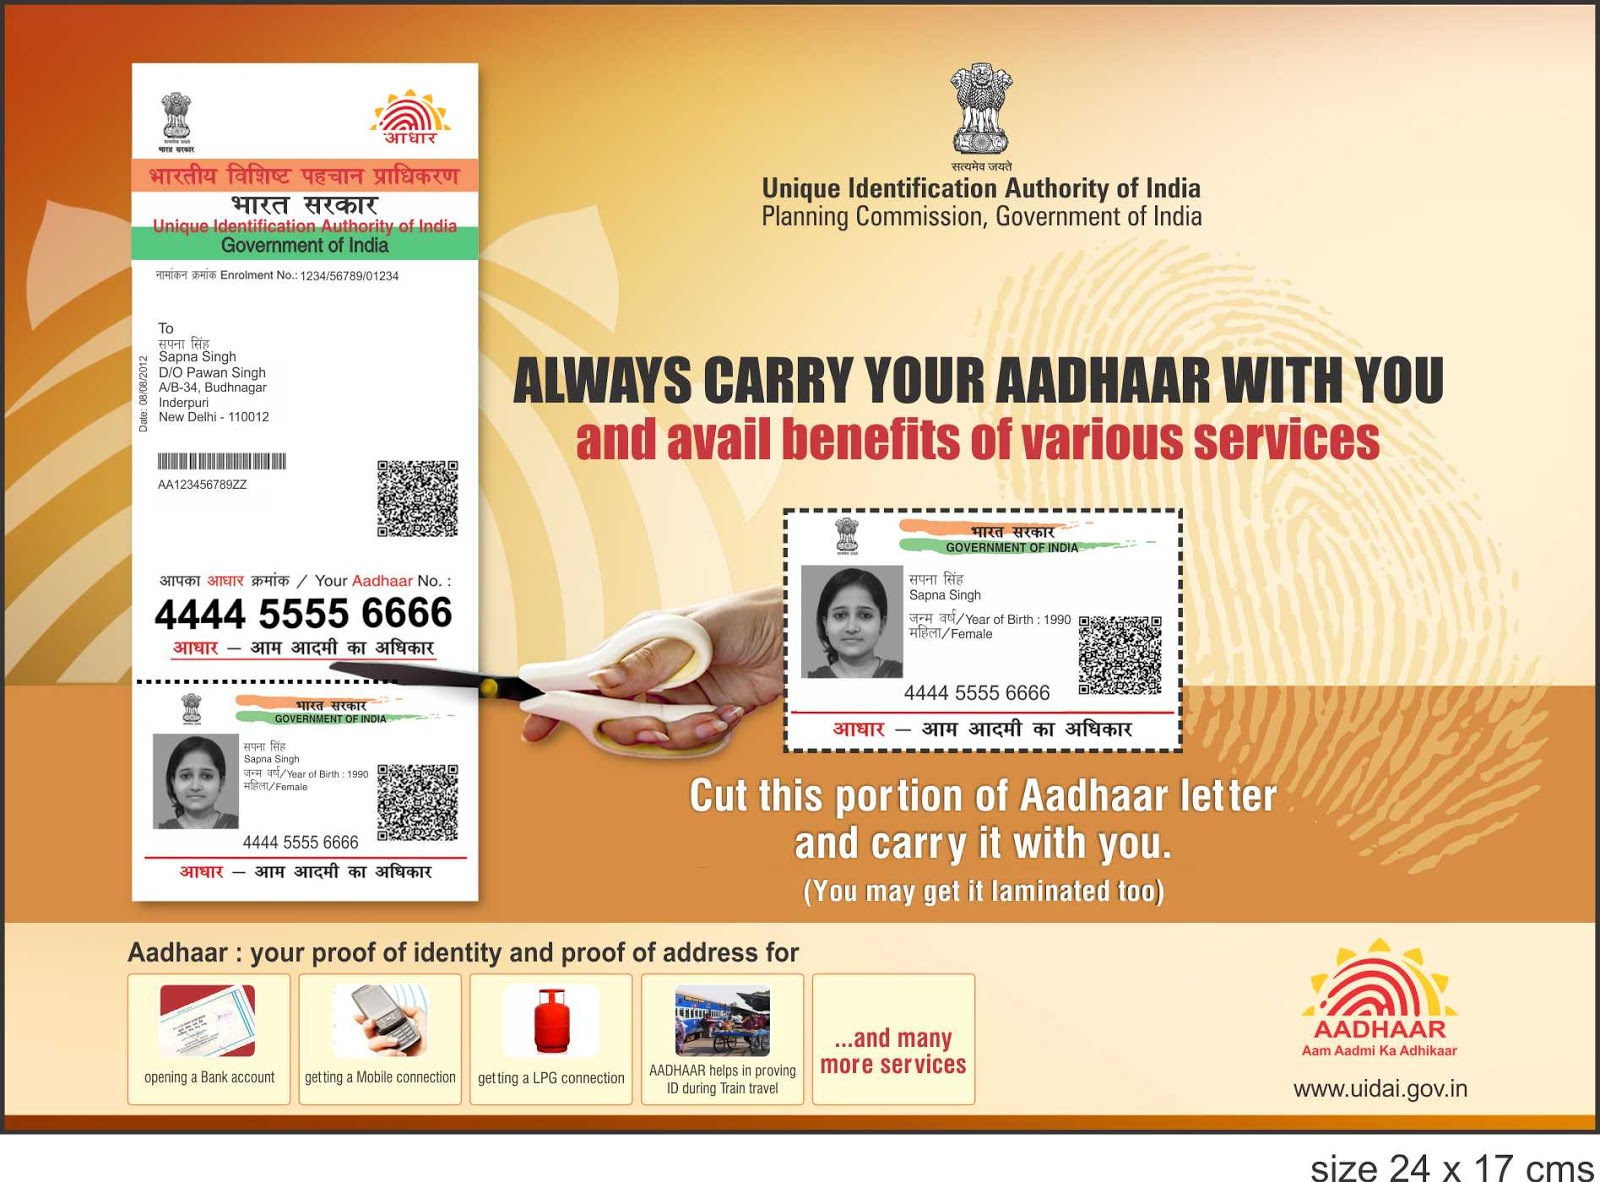 What People Know and Think About Aadhaar Scheme ?